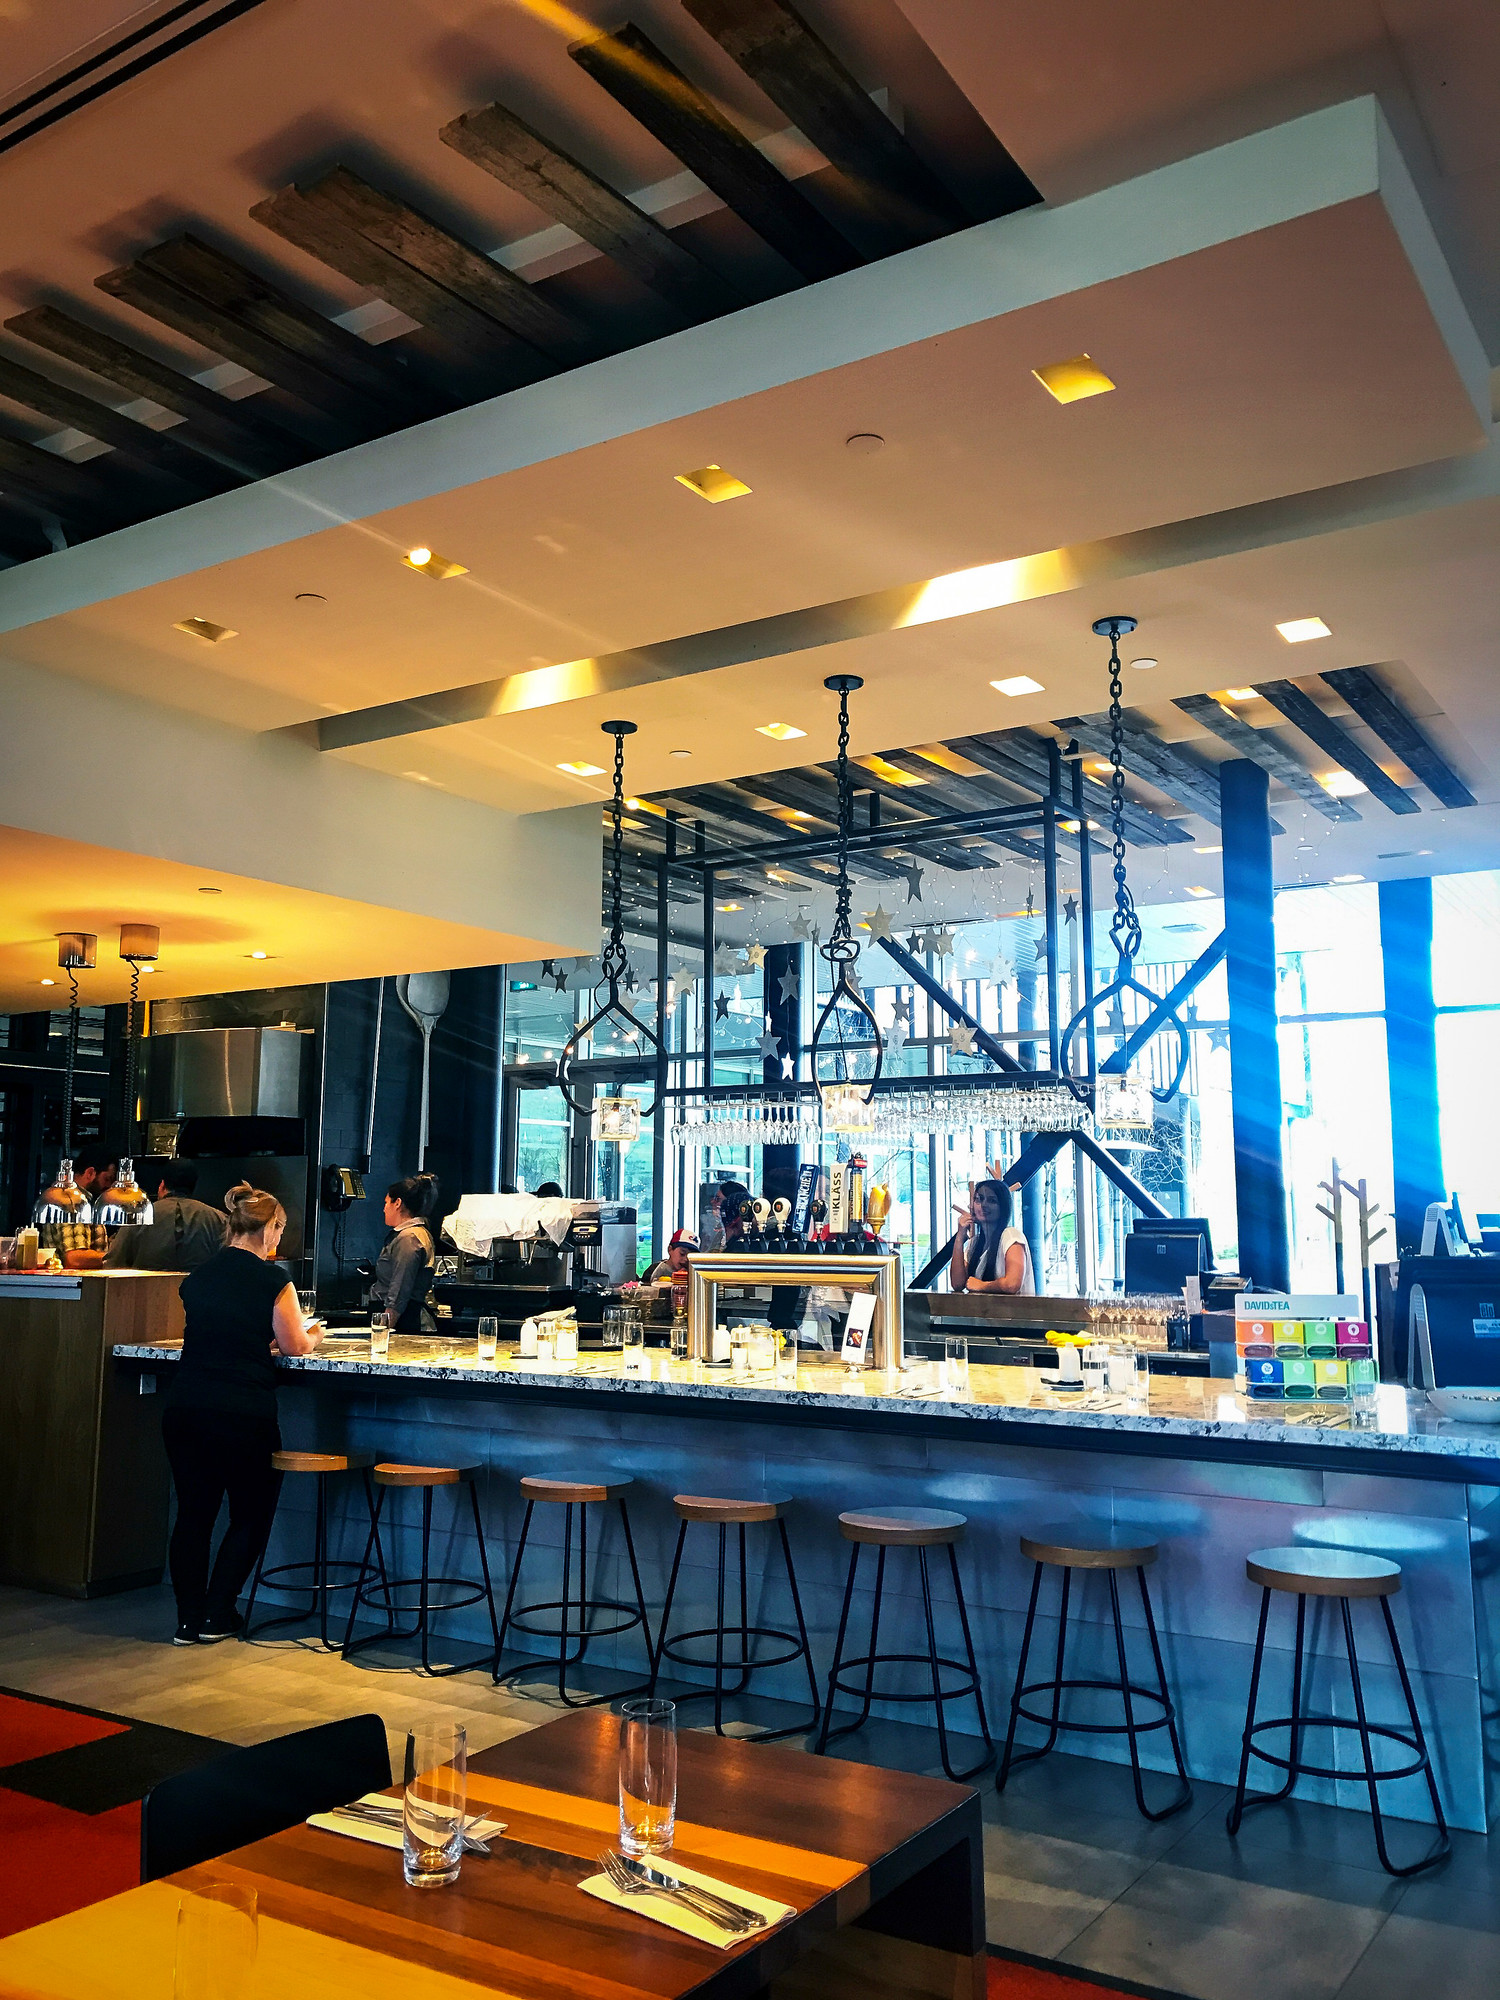 One of the best places to eat in Baie Saint Paul, Quebec - Le Germain Hotel Charlevoix